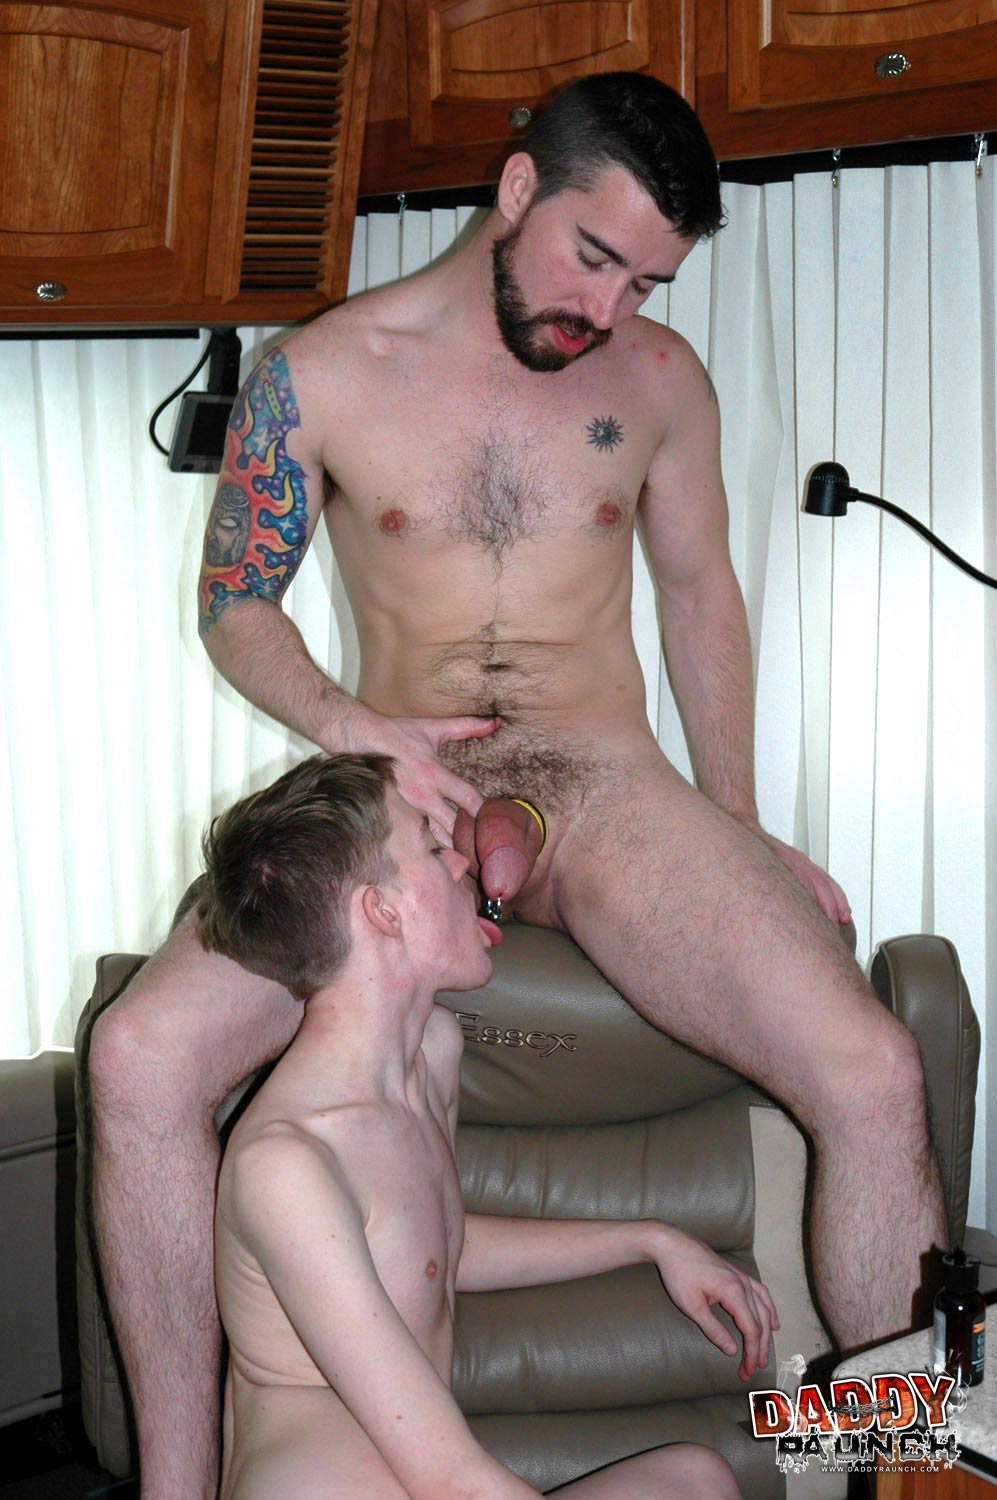 Daddy-Raunch-Sperm-Overload-III-Daddies-Fucking-Boys-Bareback-Amateur-Gay-Porn-41 Sperm Overload III - Daddies Fucking Their Boys Bareback